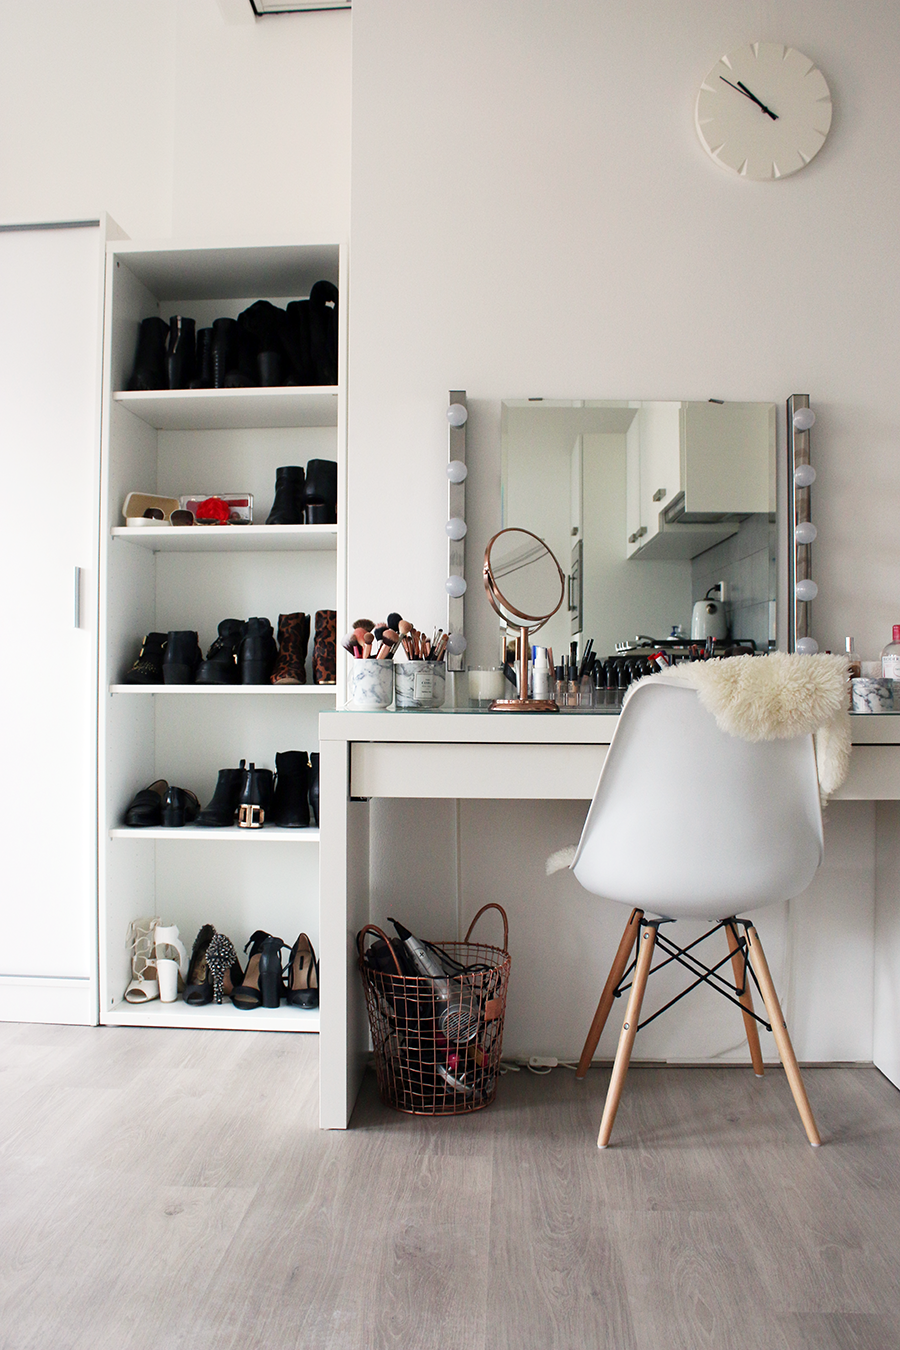 INTERIOR | Updated Make-Up Vanity Tour - Lily Like on Make Up Room Design  id=19696